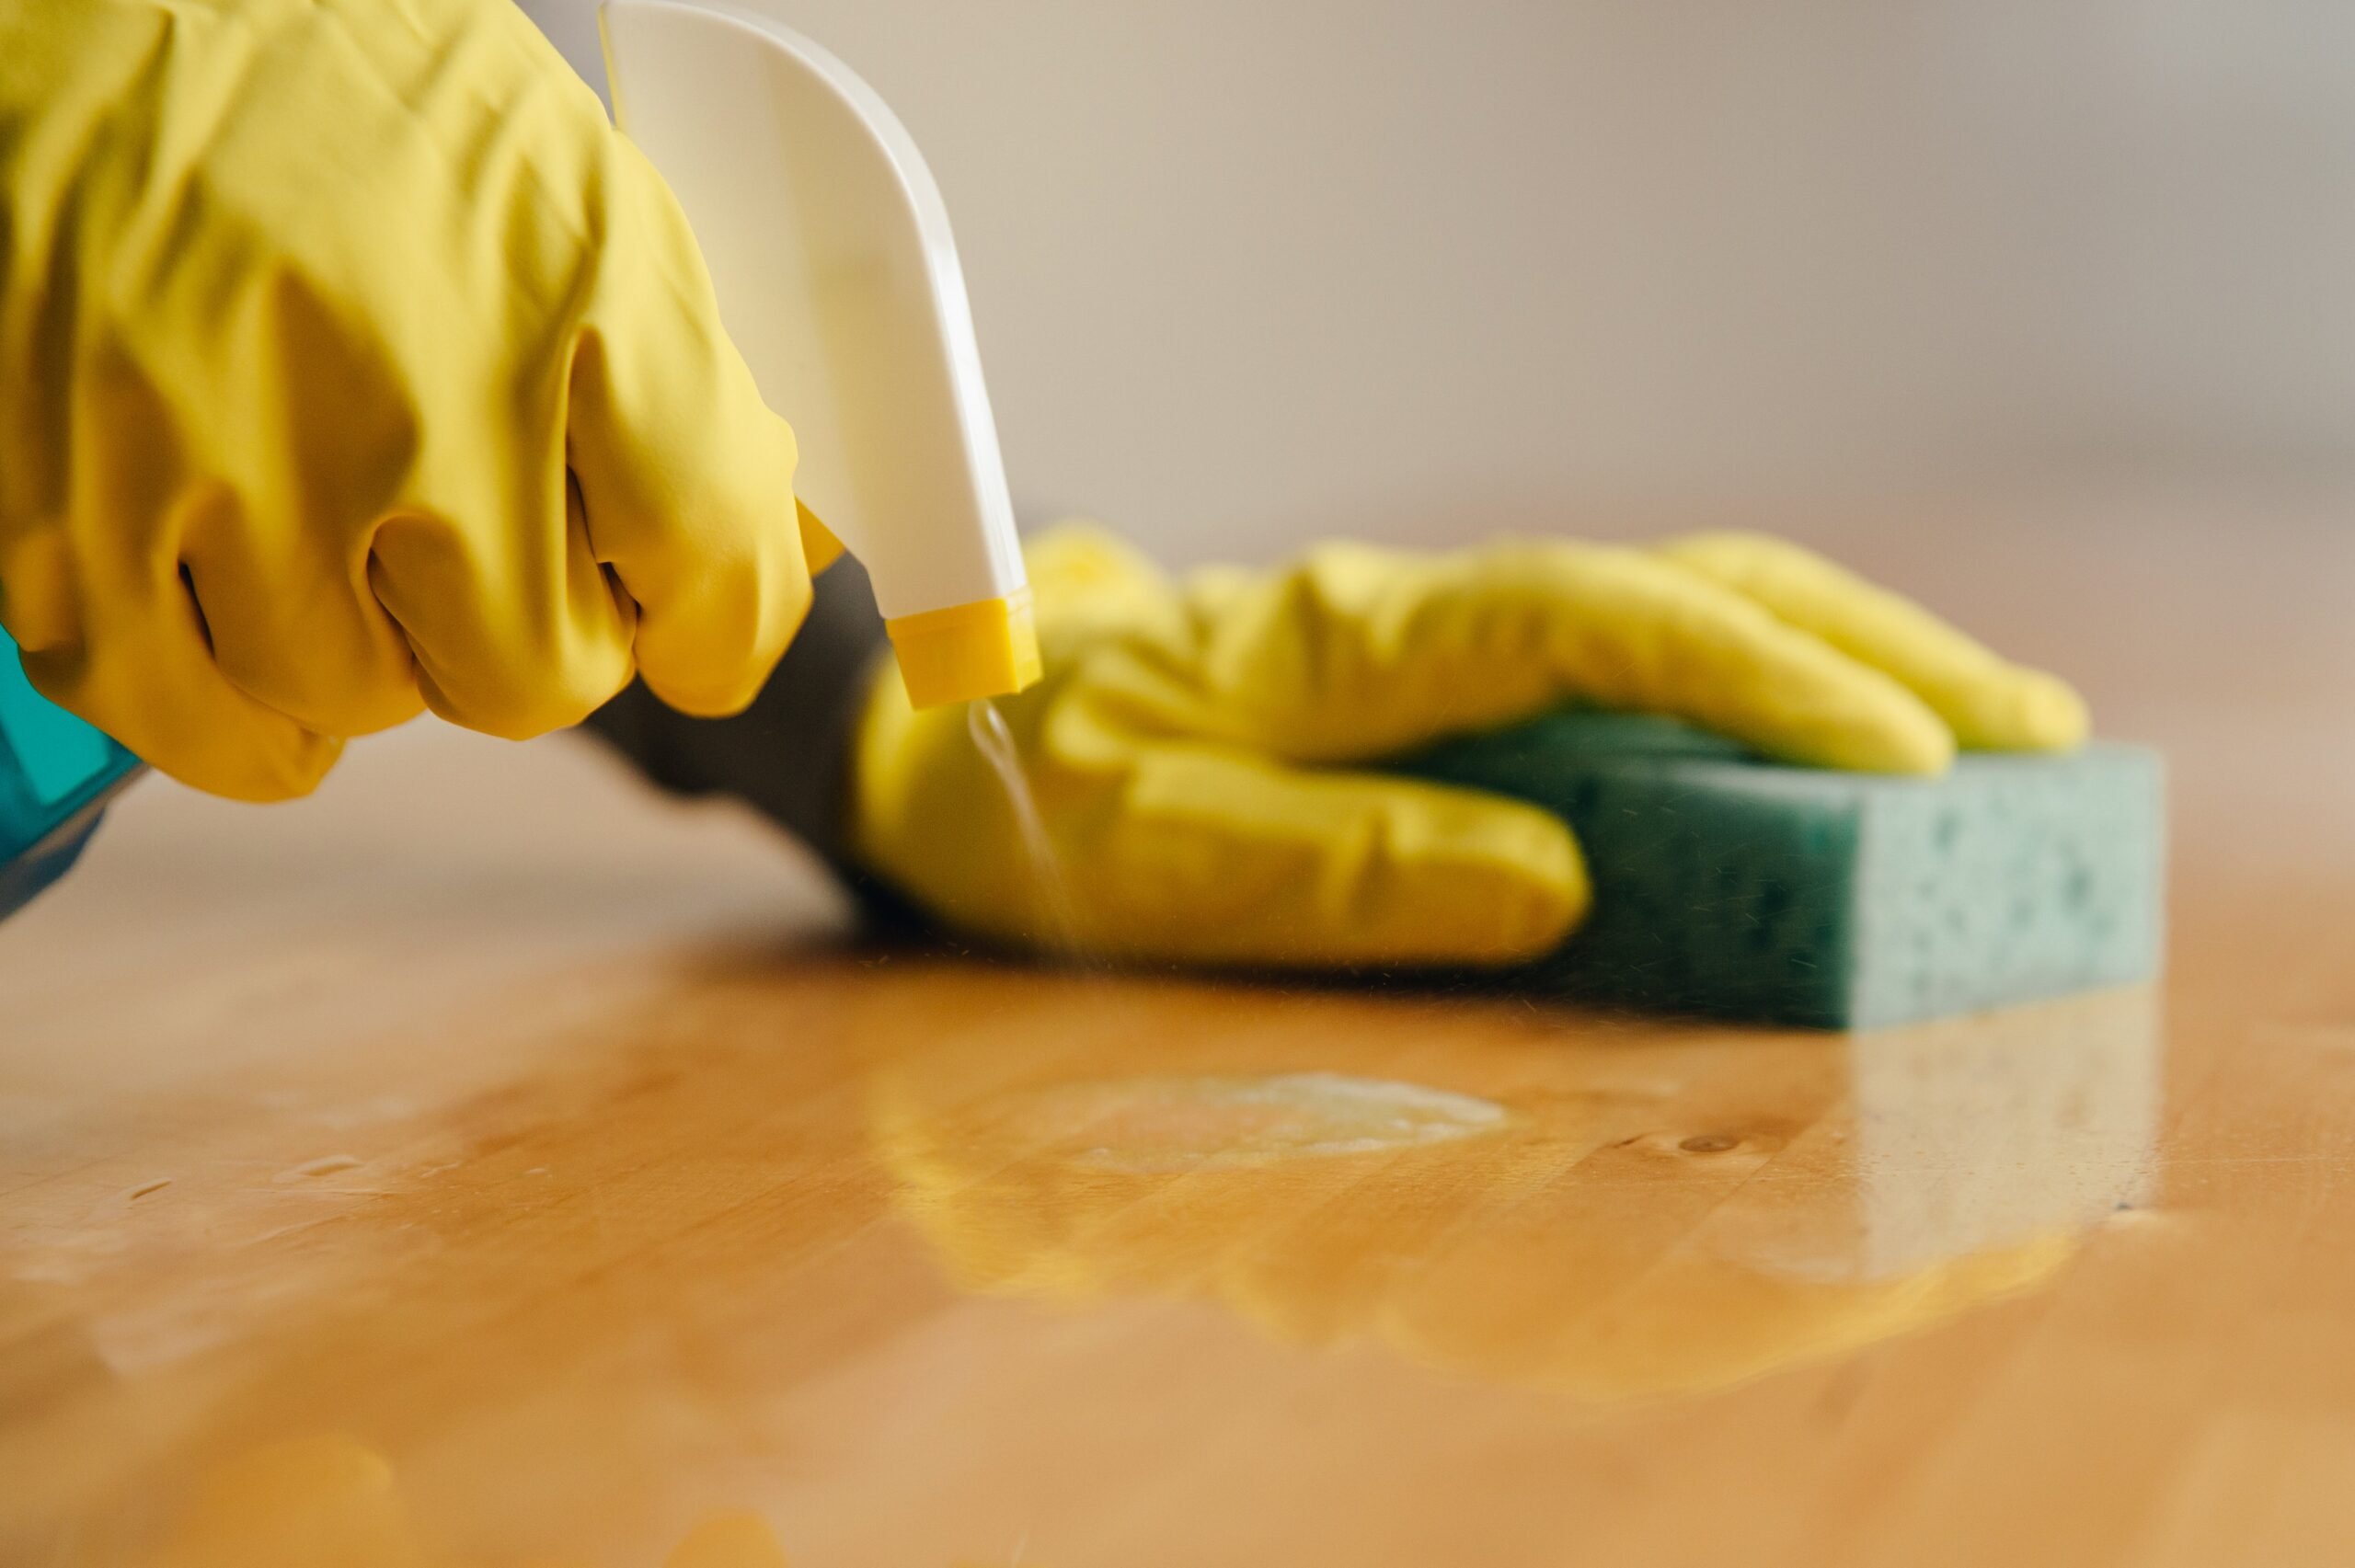 Covid19 and cleaning